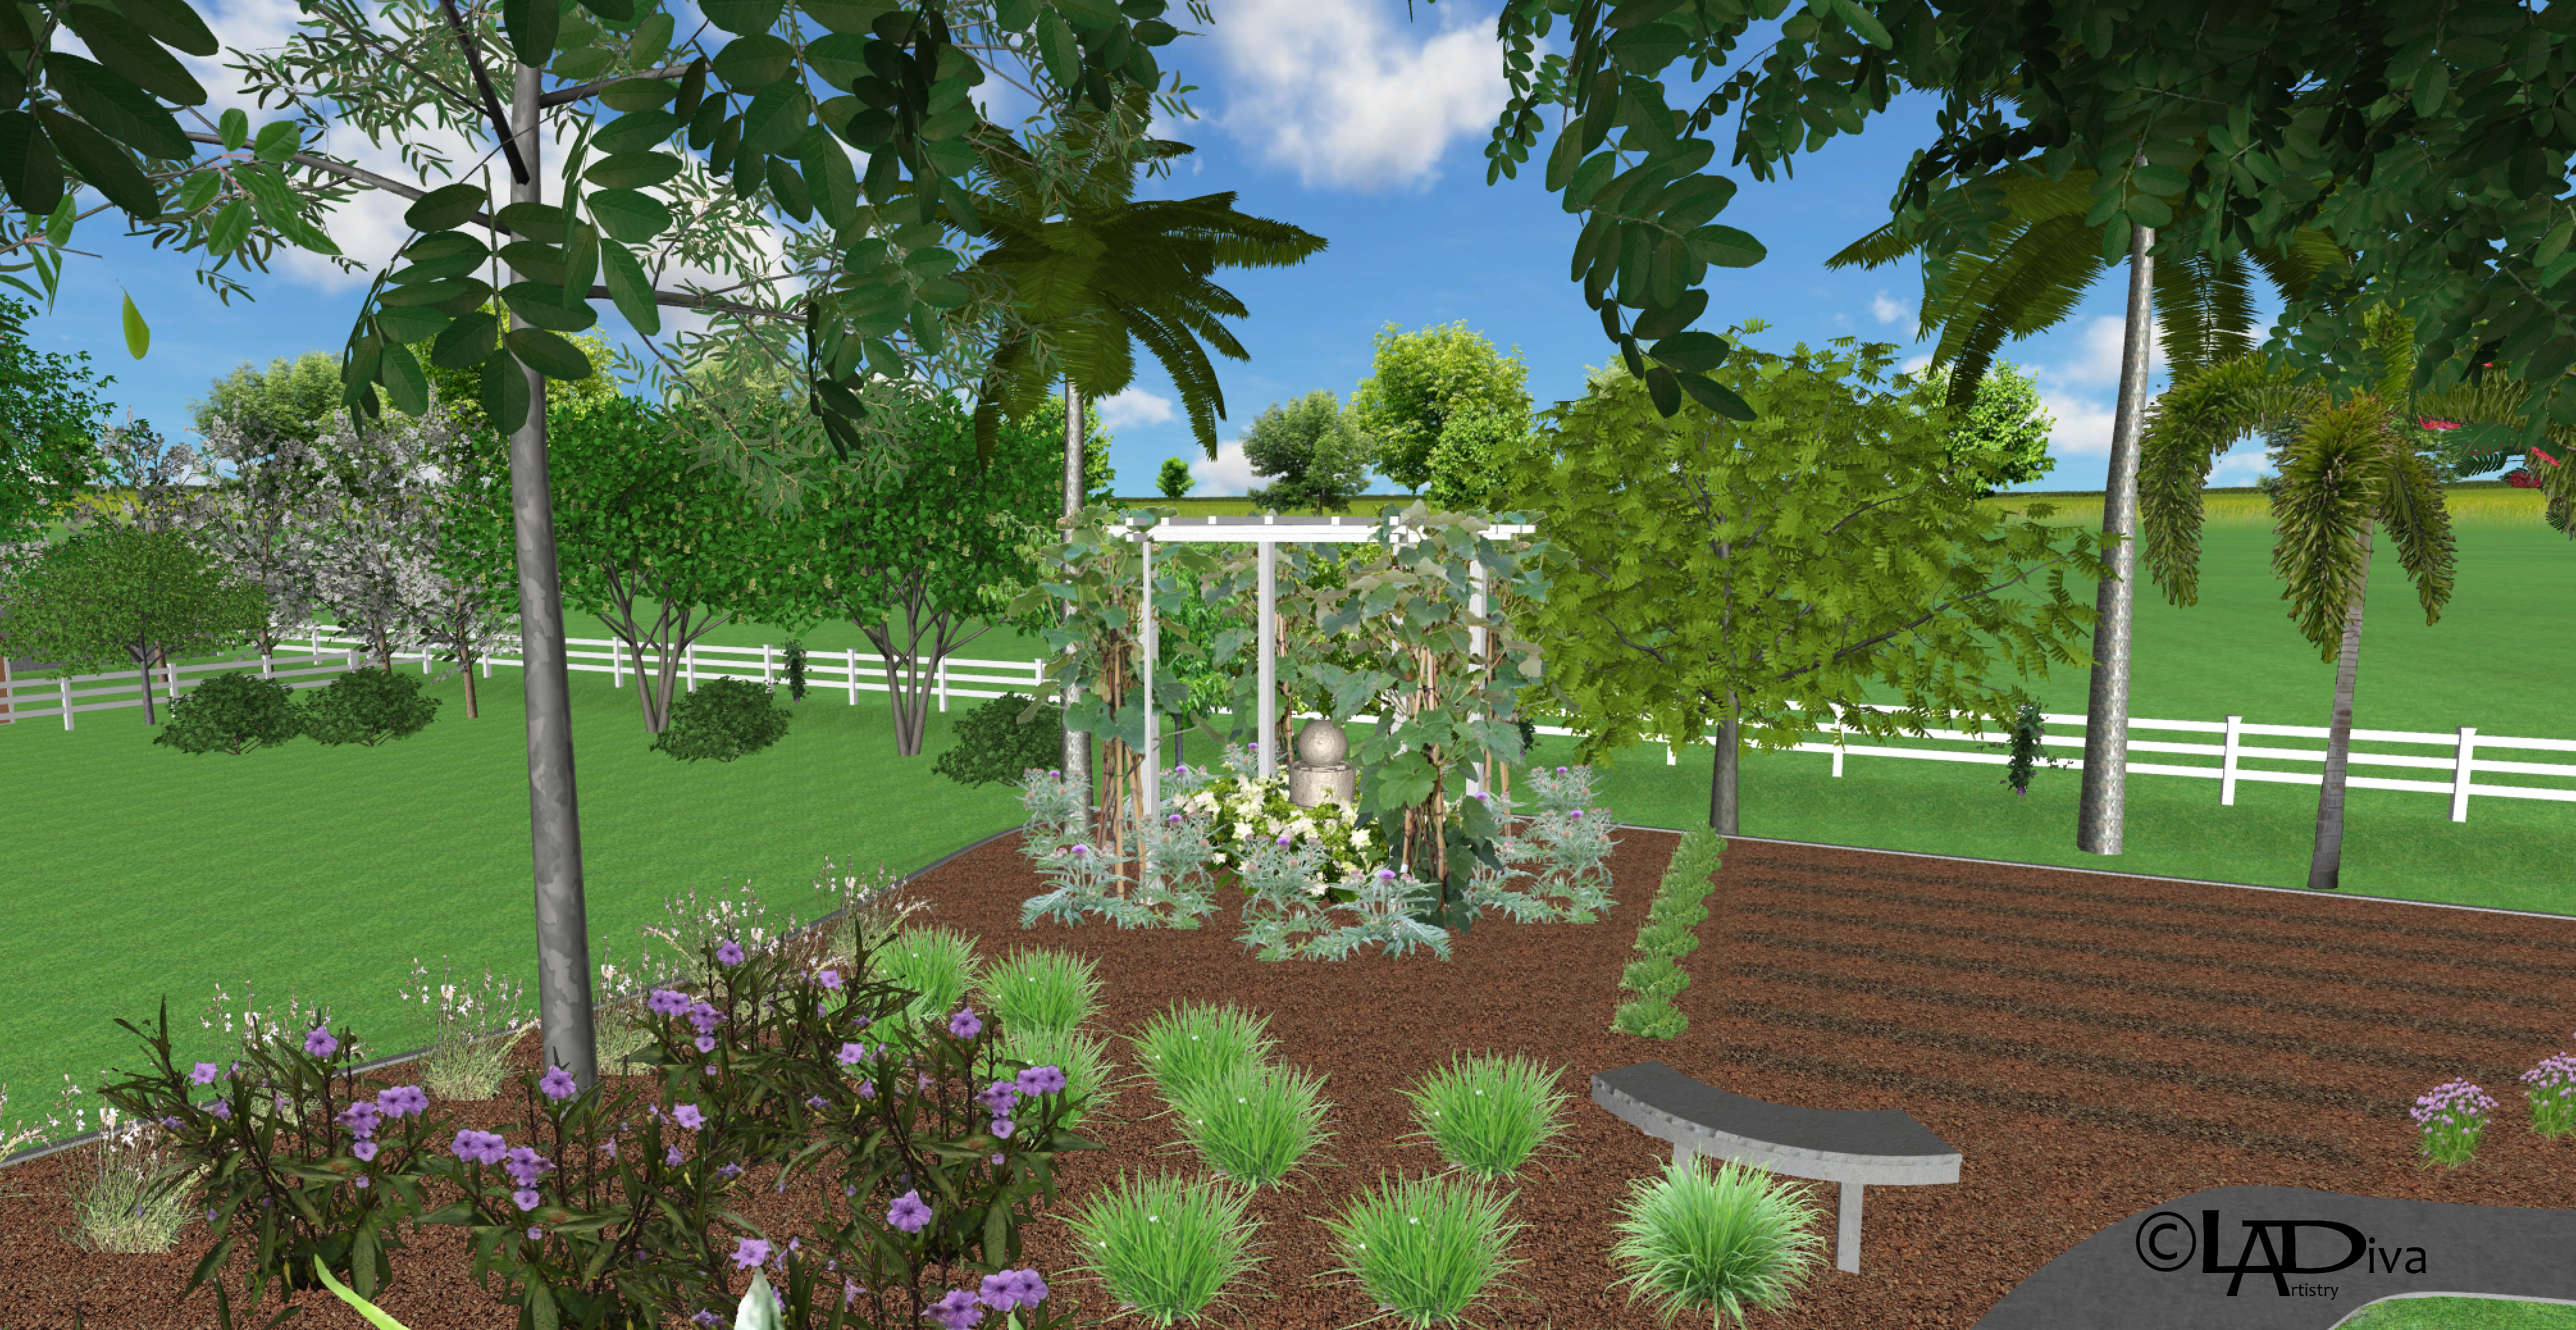 """Edible & Tropical """"Park Like"""" Oasis on 1.65 Flood Irrigated Acres - Gilbert, AZ ©LADiva Artistry Landscape Design Solutions, specializing in edible & tropical garden design in Gilbert, AZ. Featuring Custom 2D Color Master Landscape Design Plans and 3D Virtual Walkthrough Tours. Cultivating beautiful, productive oases in the greater Phoenix, Arizona area showcasing tropical trees, fruit trees, edible plants & herbs in low maintenance, stunning gardens."""